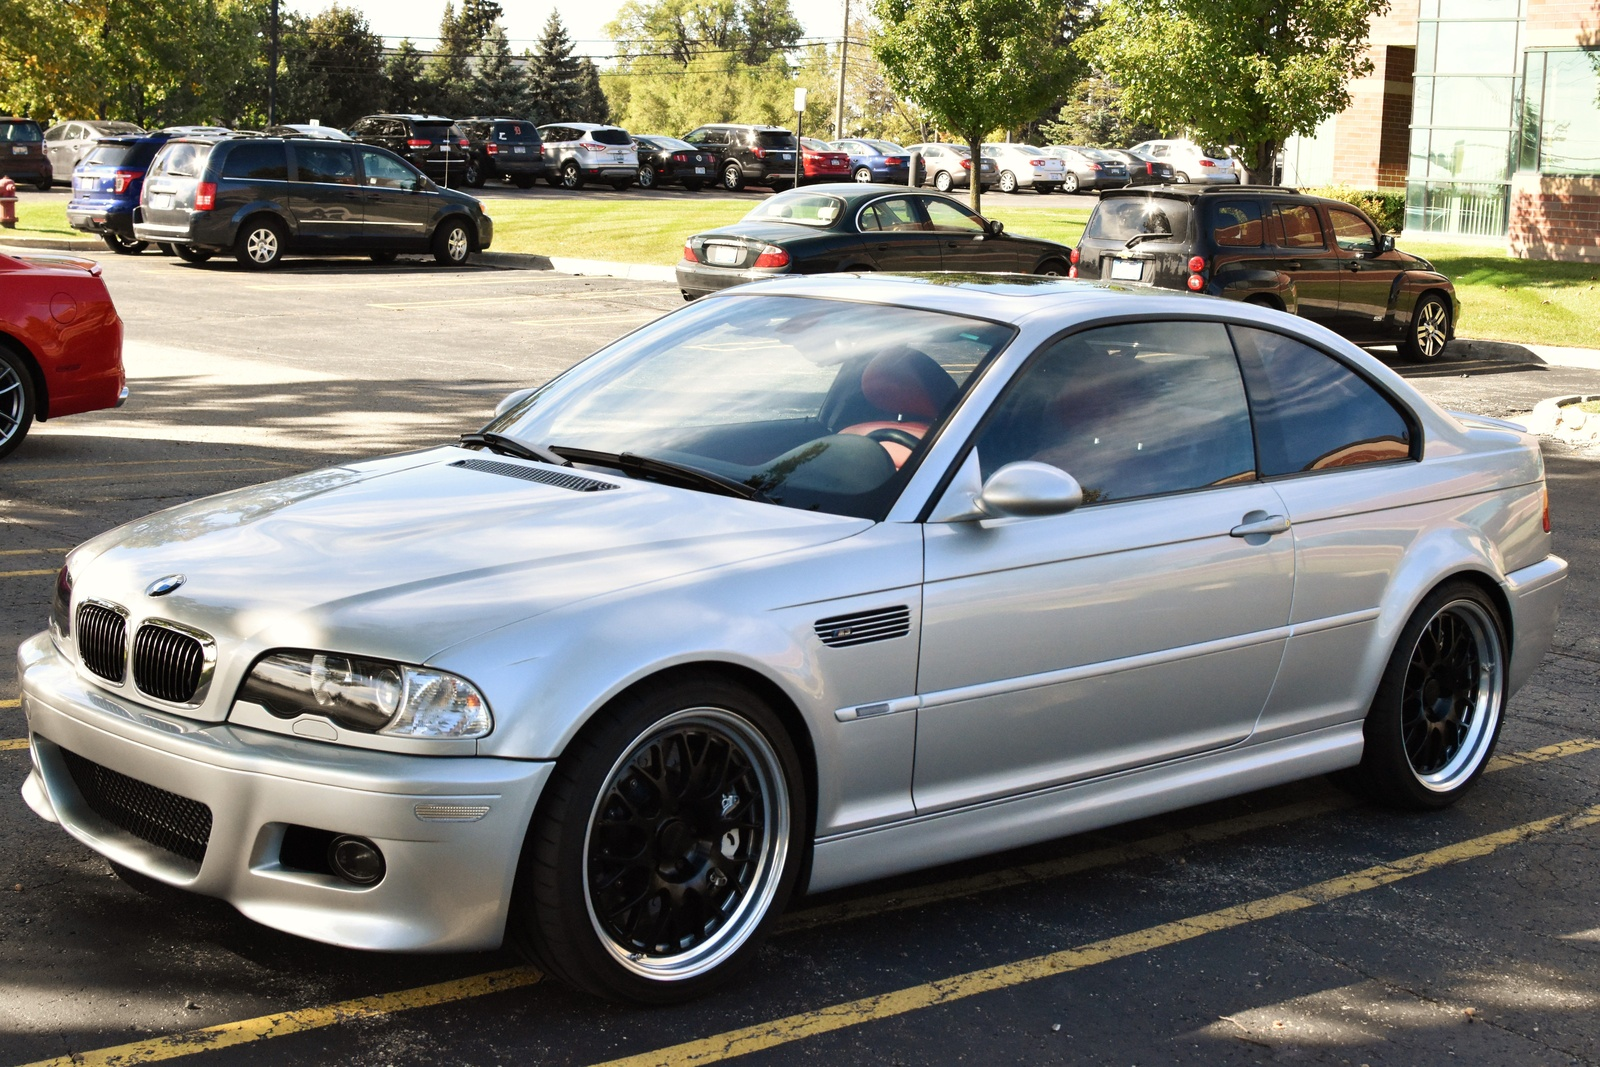 Used bmw m3 for sale toledo oh cargurus - Used bmw m3 coupe for sale ...